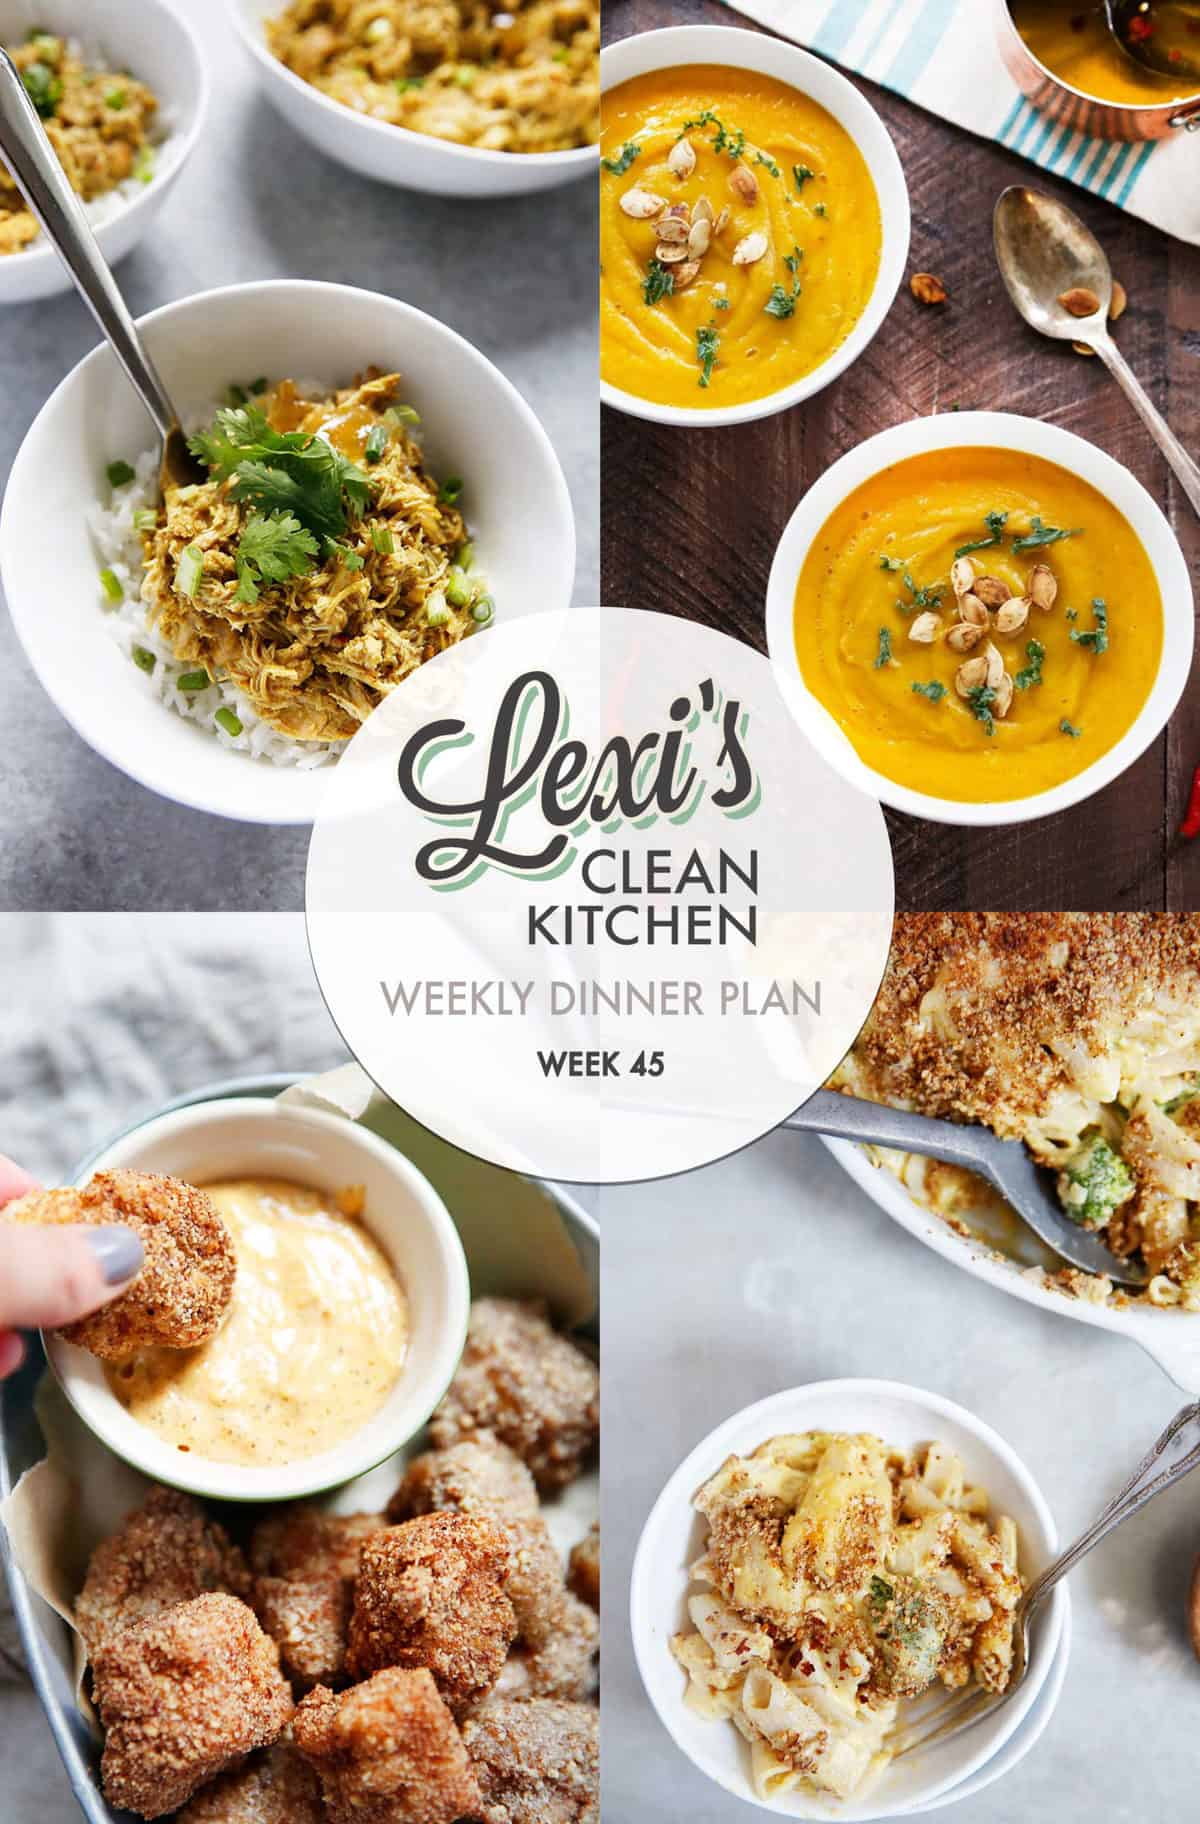 Lexi's Weekly Dinner Plan Week 45